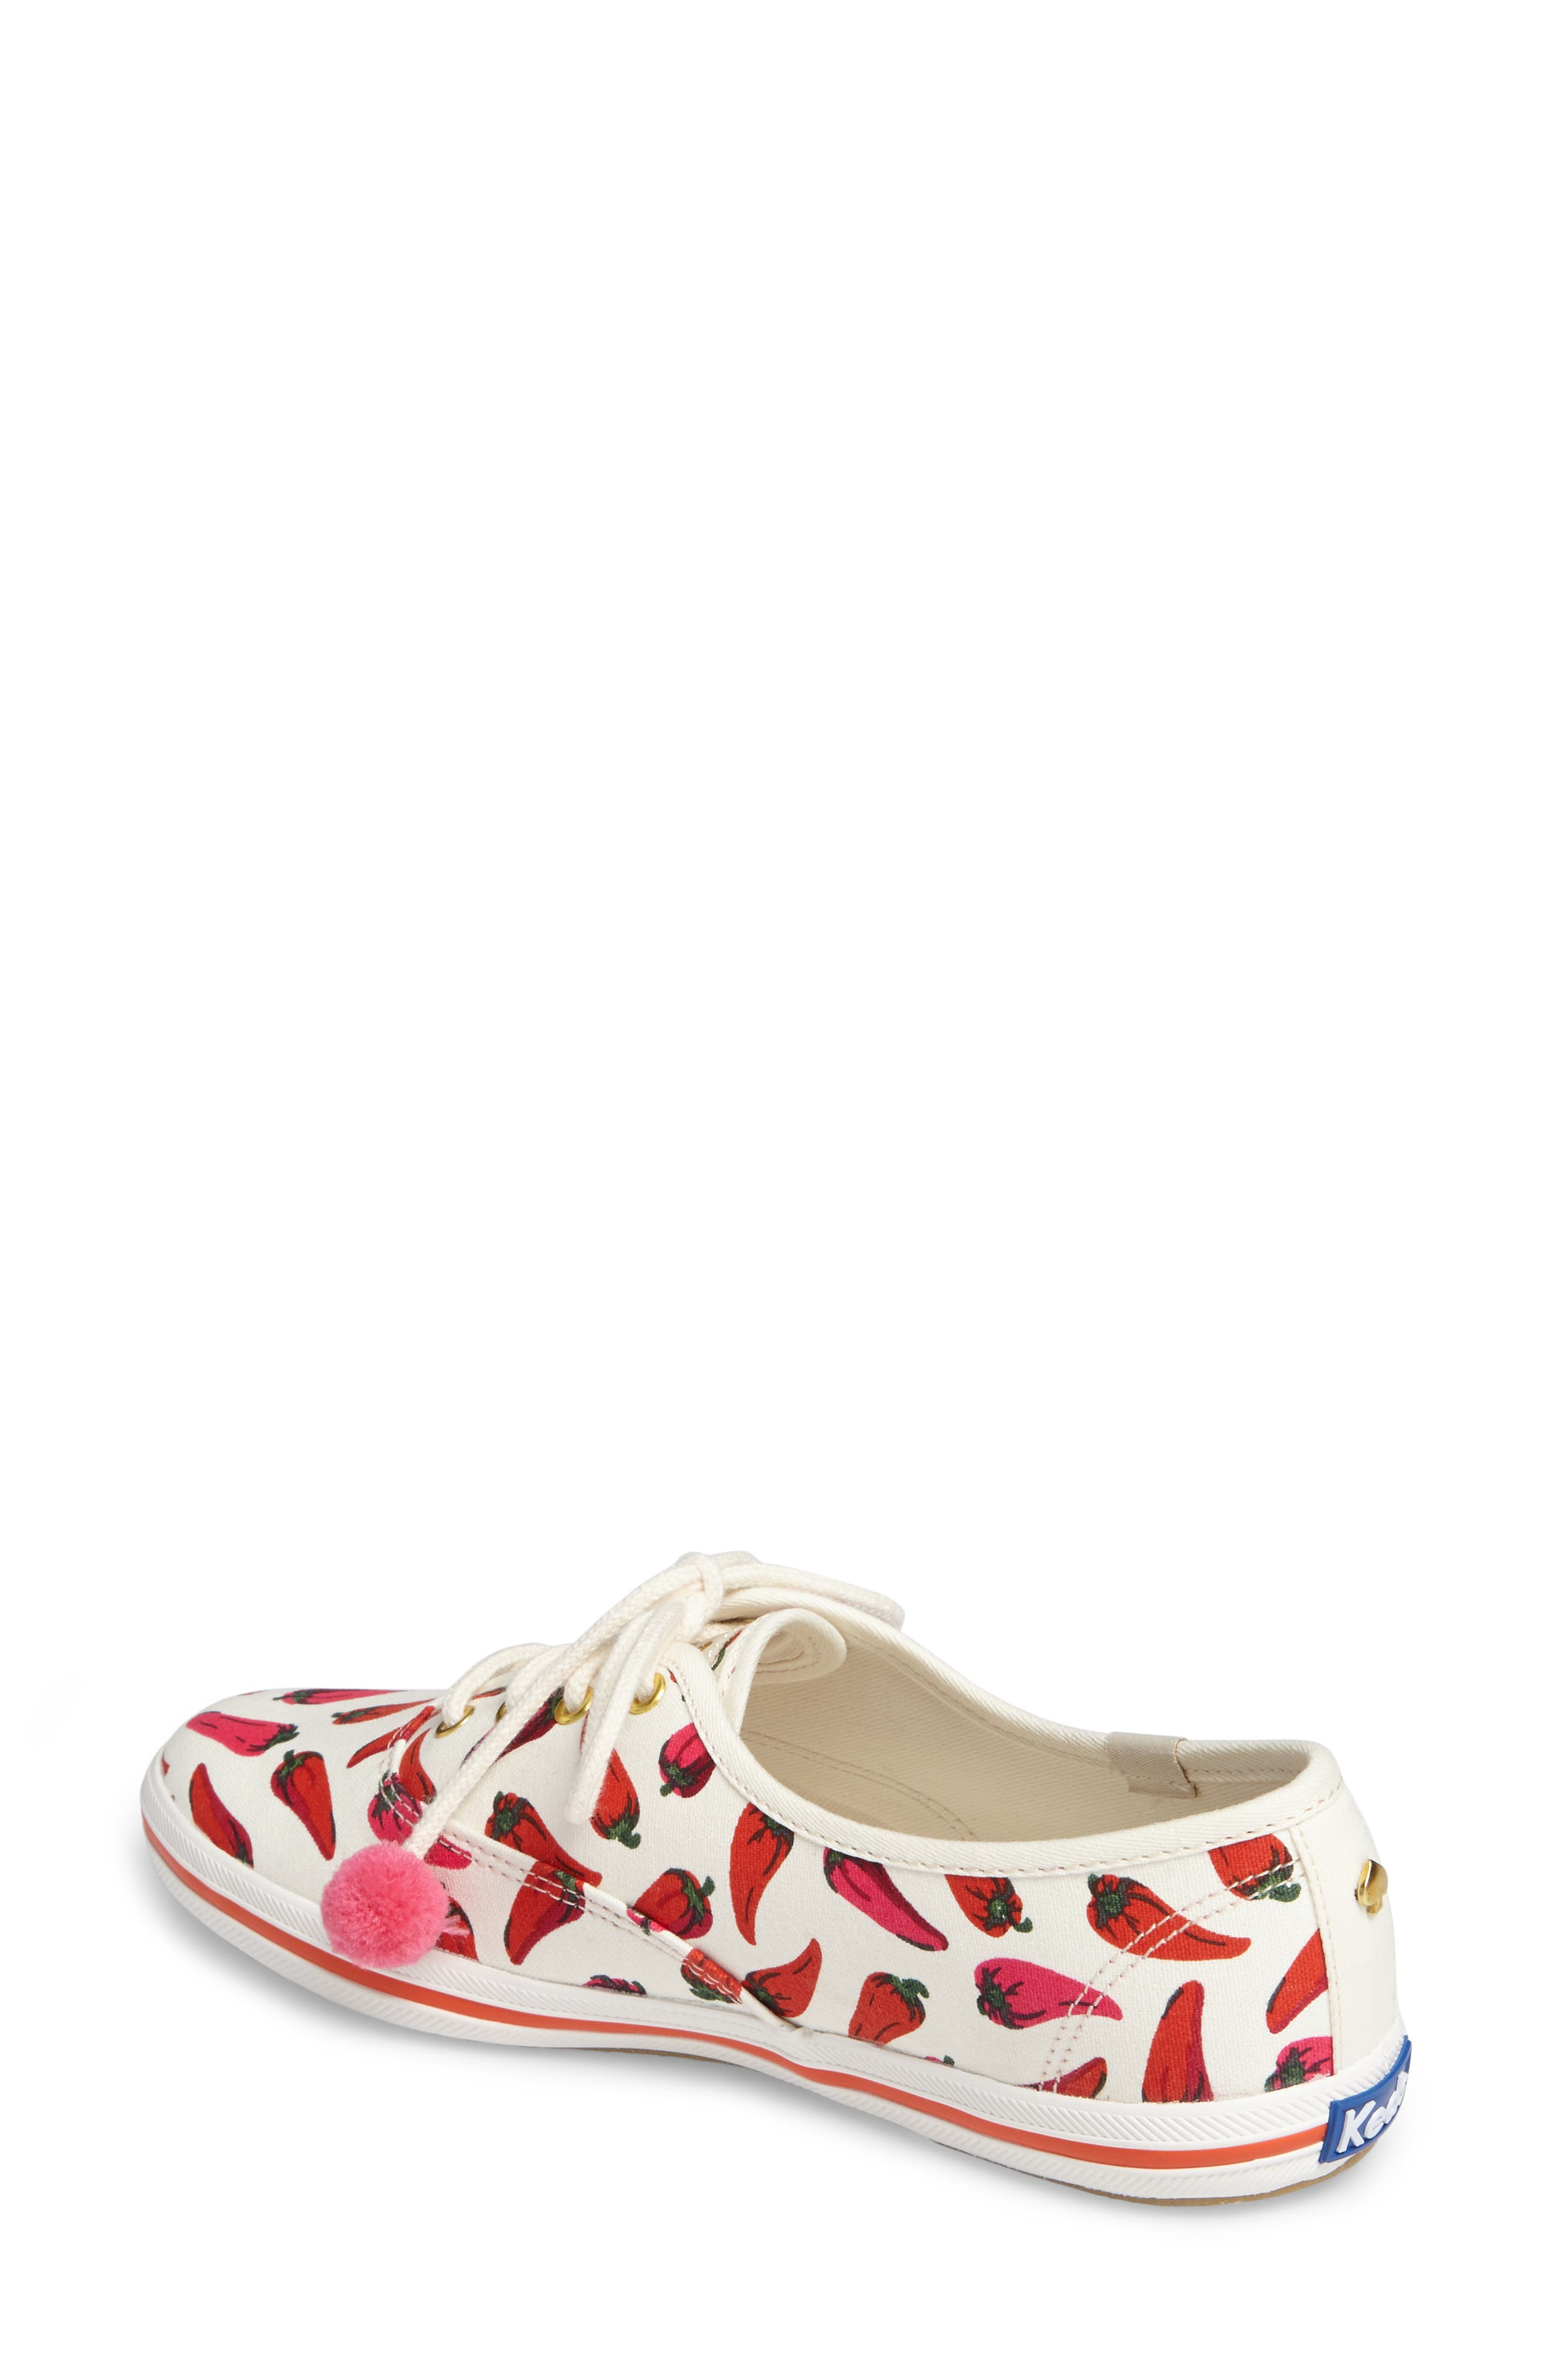 Keds<sup>®</sup> x kate spade new york champion sneaker,                             Alternate thumbnail 8, color,